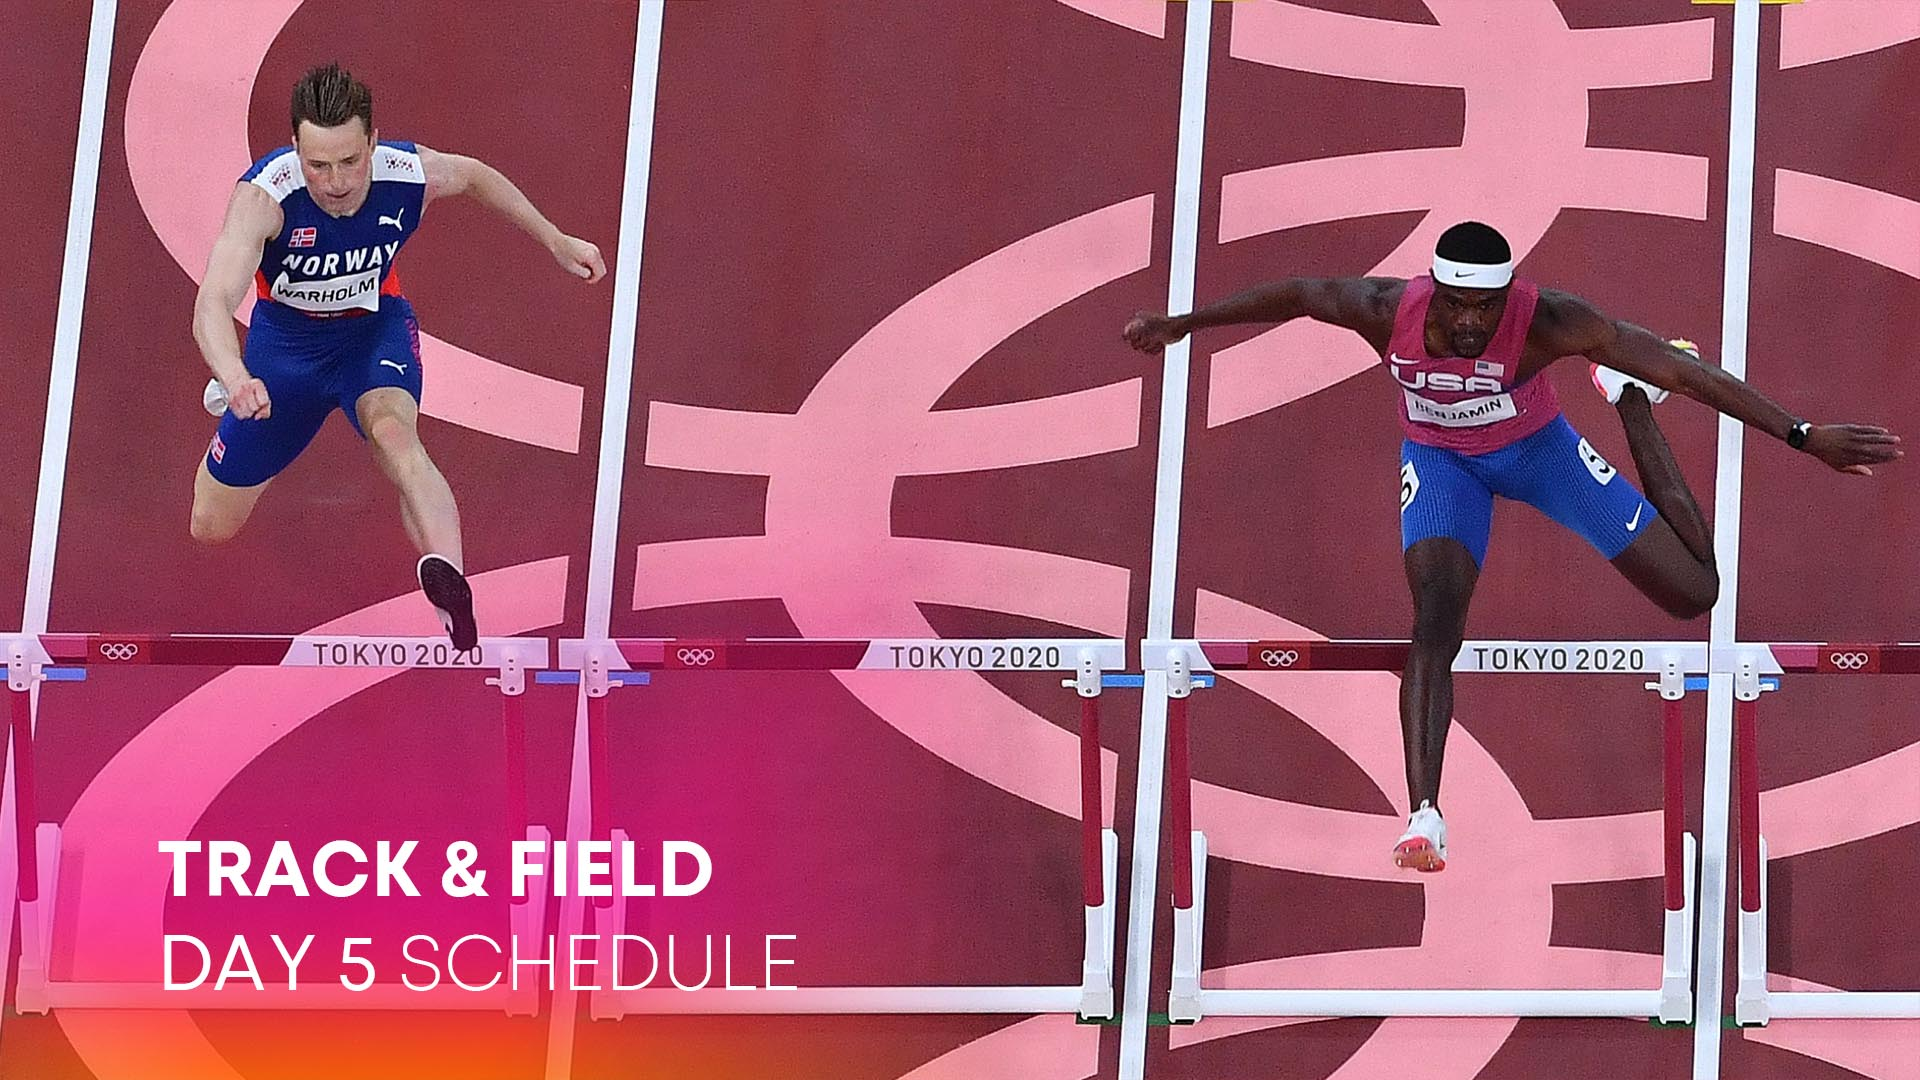 Image for Track & Field Day 5: At last, Warholm, Benjamin clash for gold